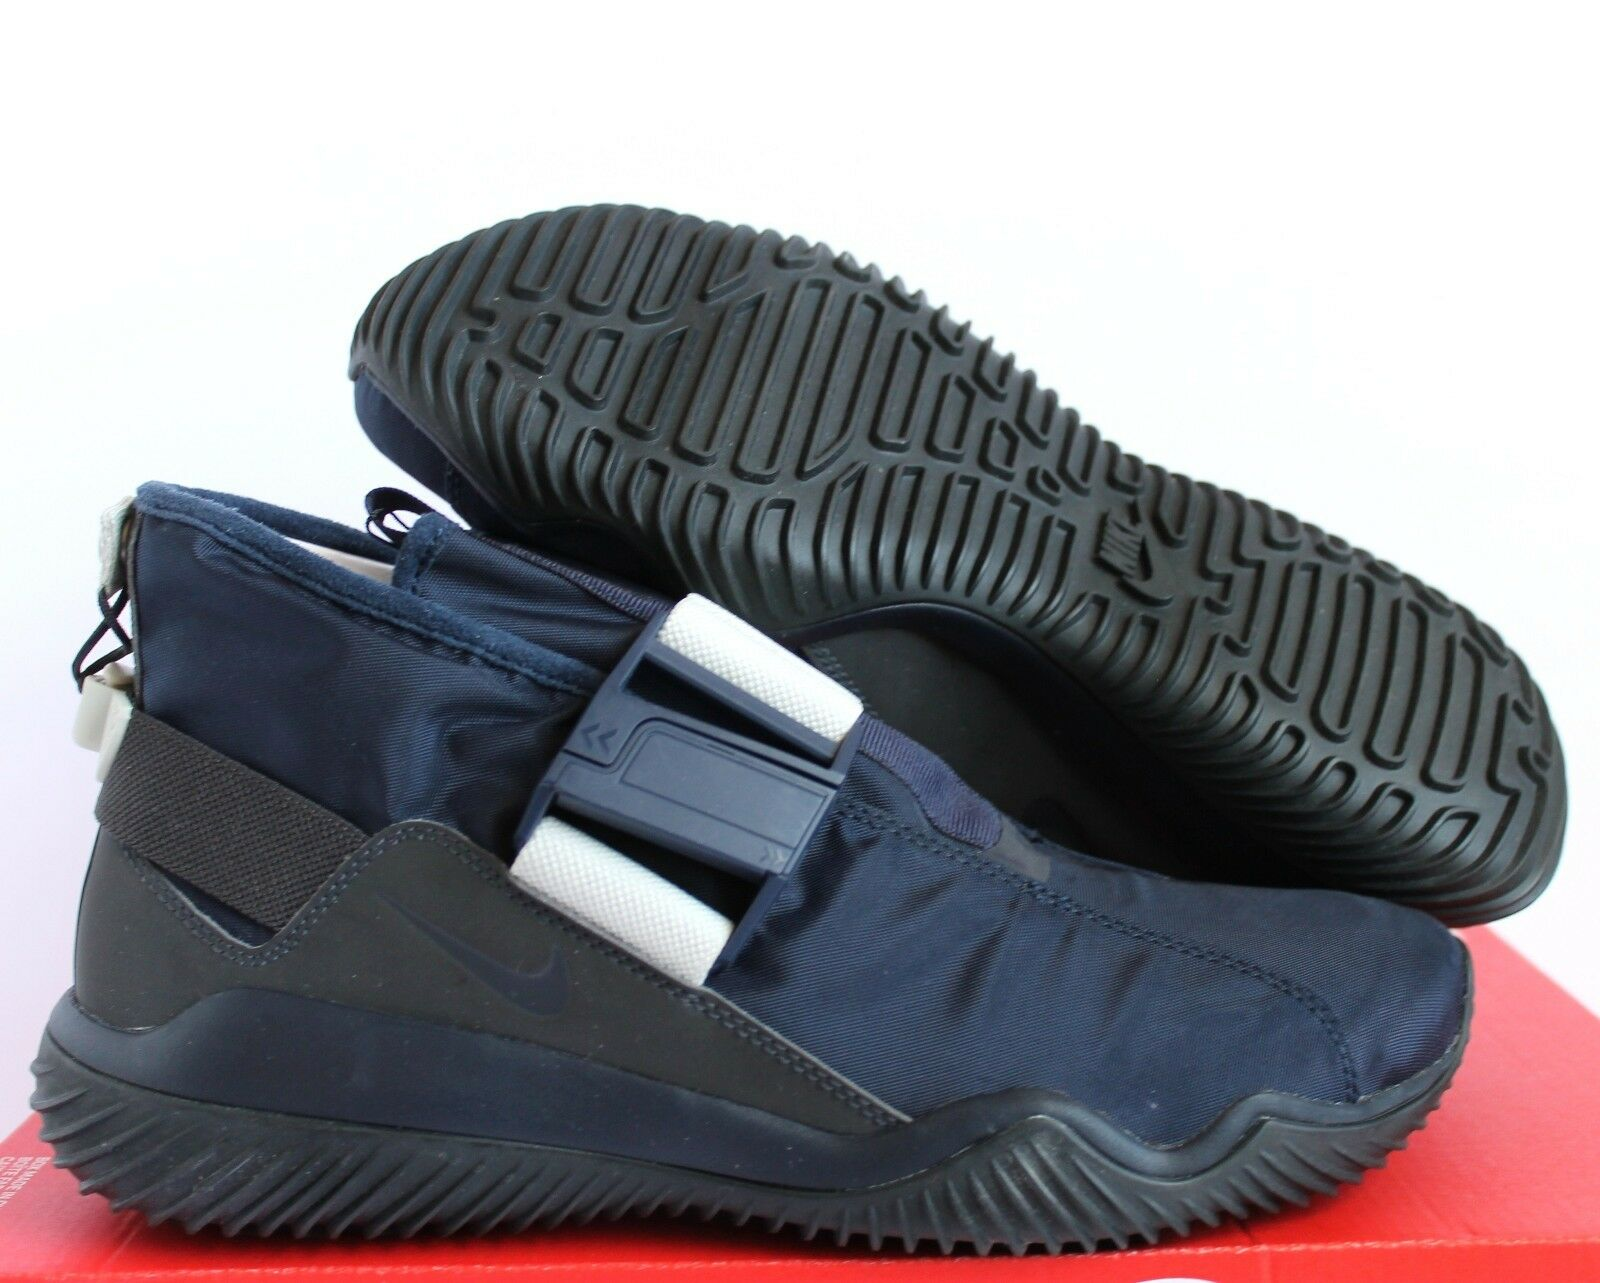 NIKE KOMYUTER SE ACG OBSIDIAN NAVY BLUE-ANTHRACITE Price reduction best-selling model of the brand